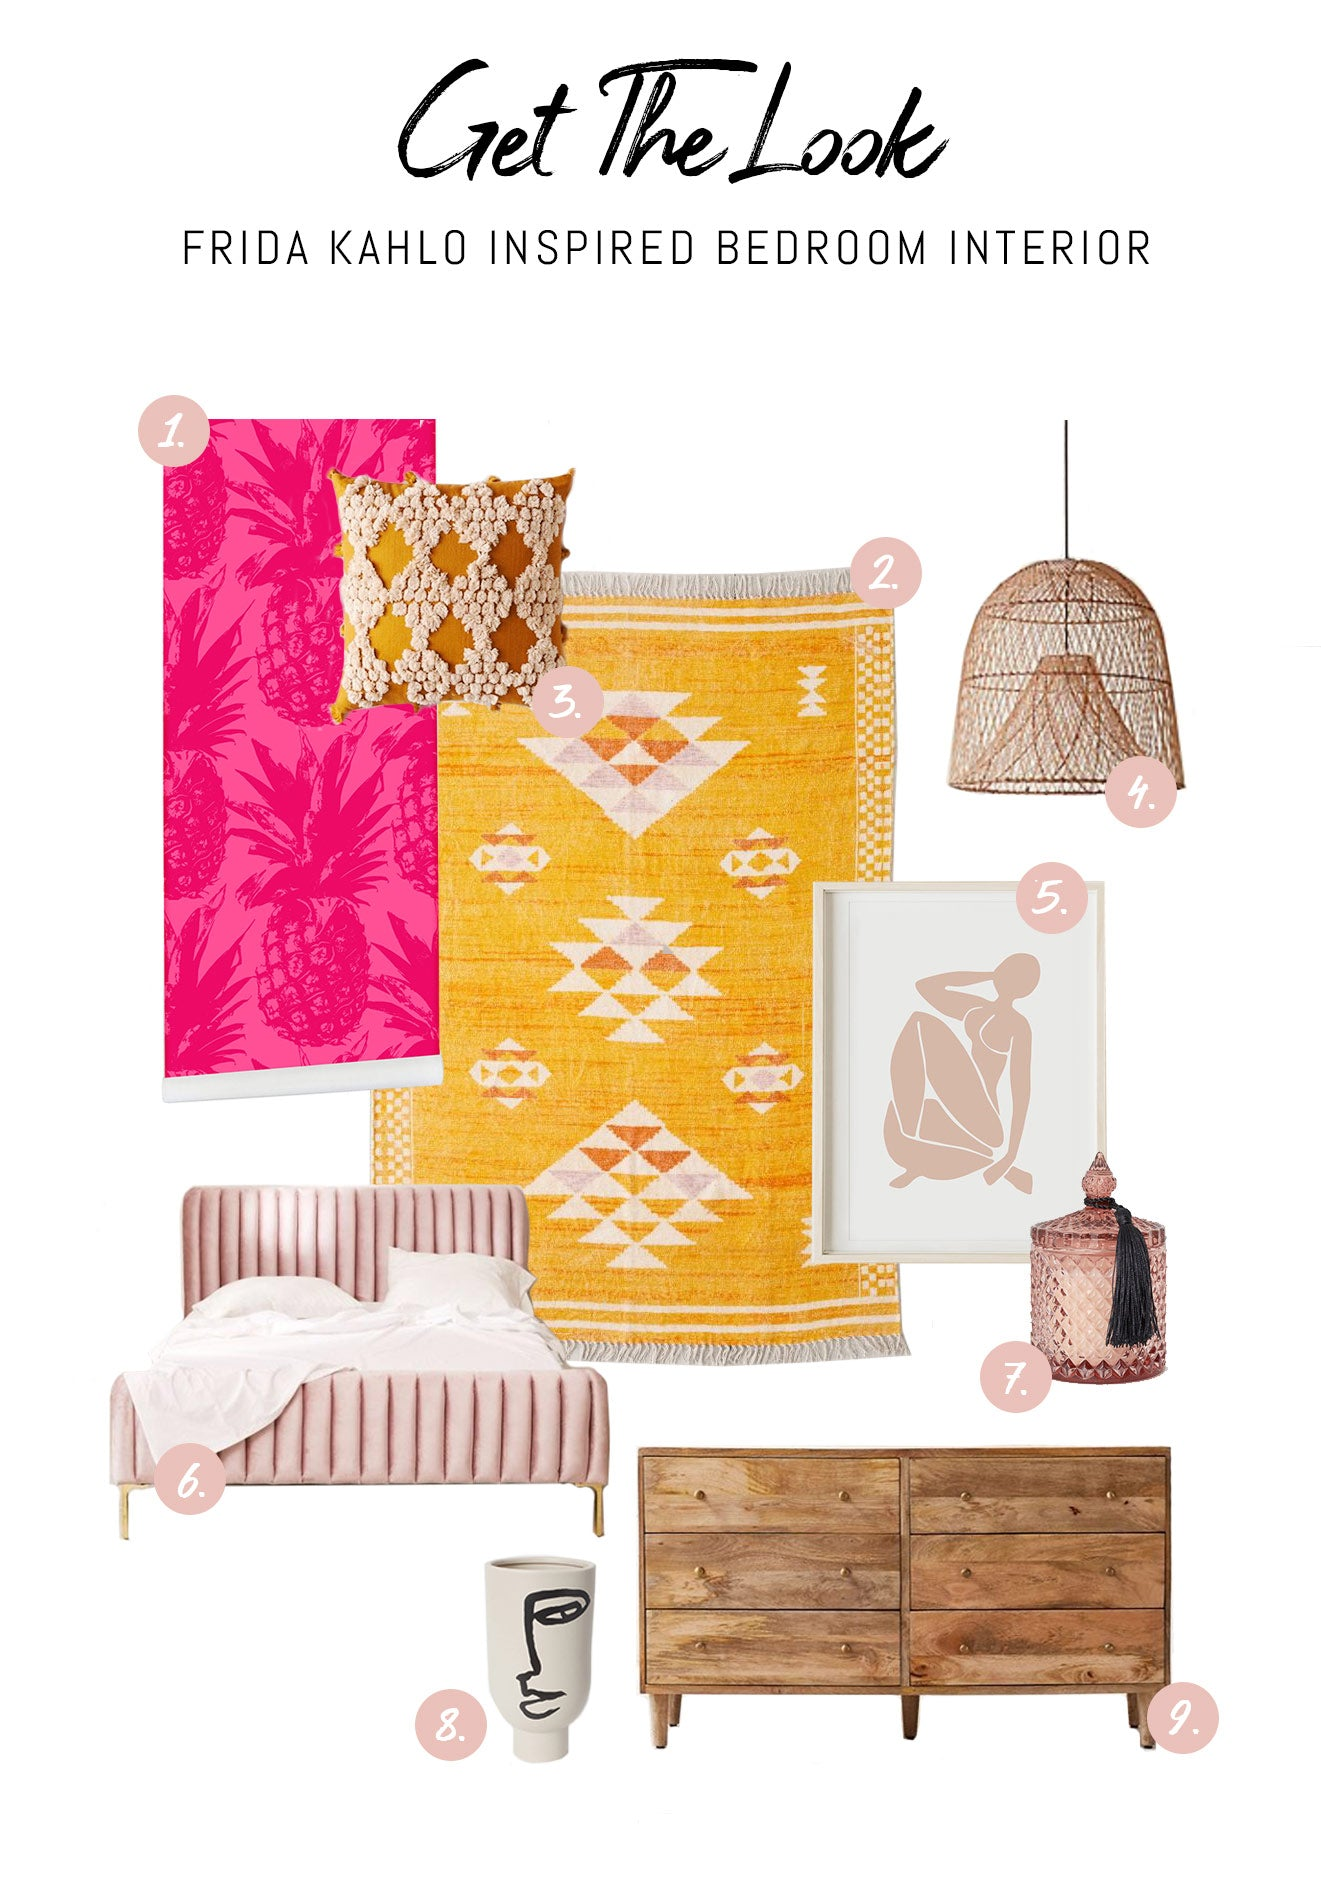 Modern Frida Kahlo inspired bedroom interior design with blush pink velvet bed, sunny yellow mexican area rug and soft pink interior decor elements